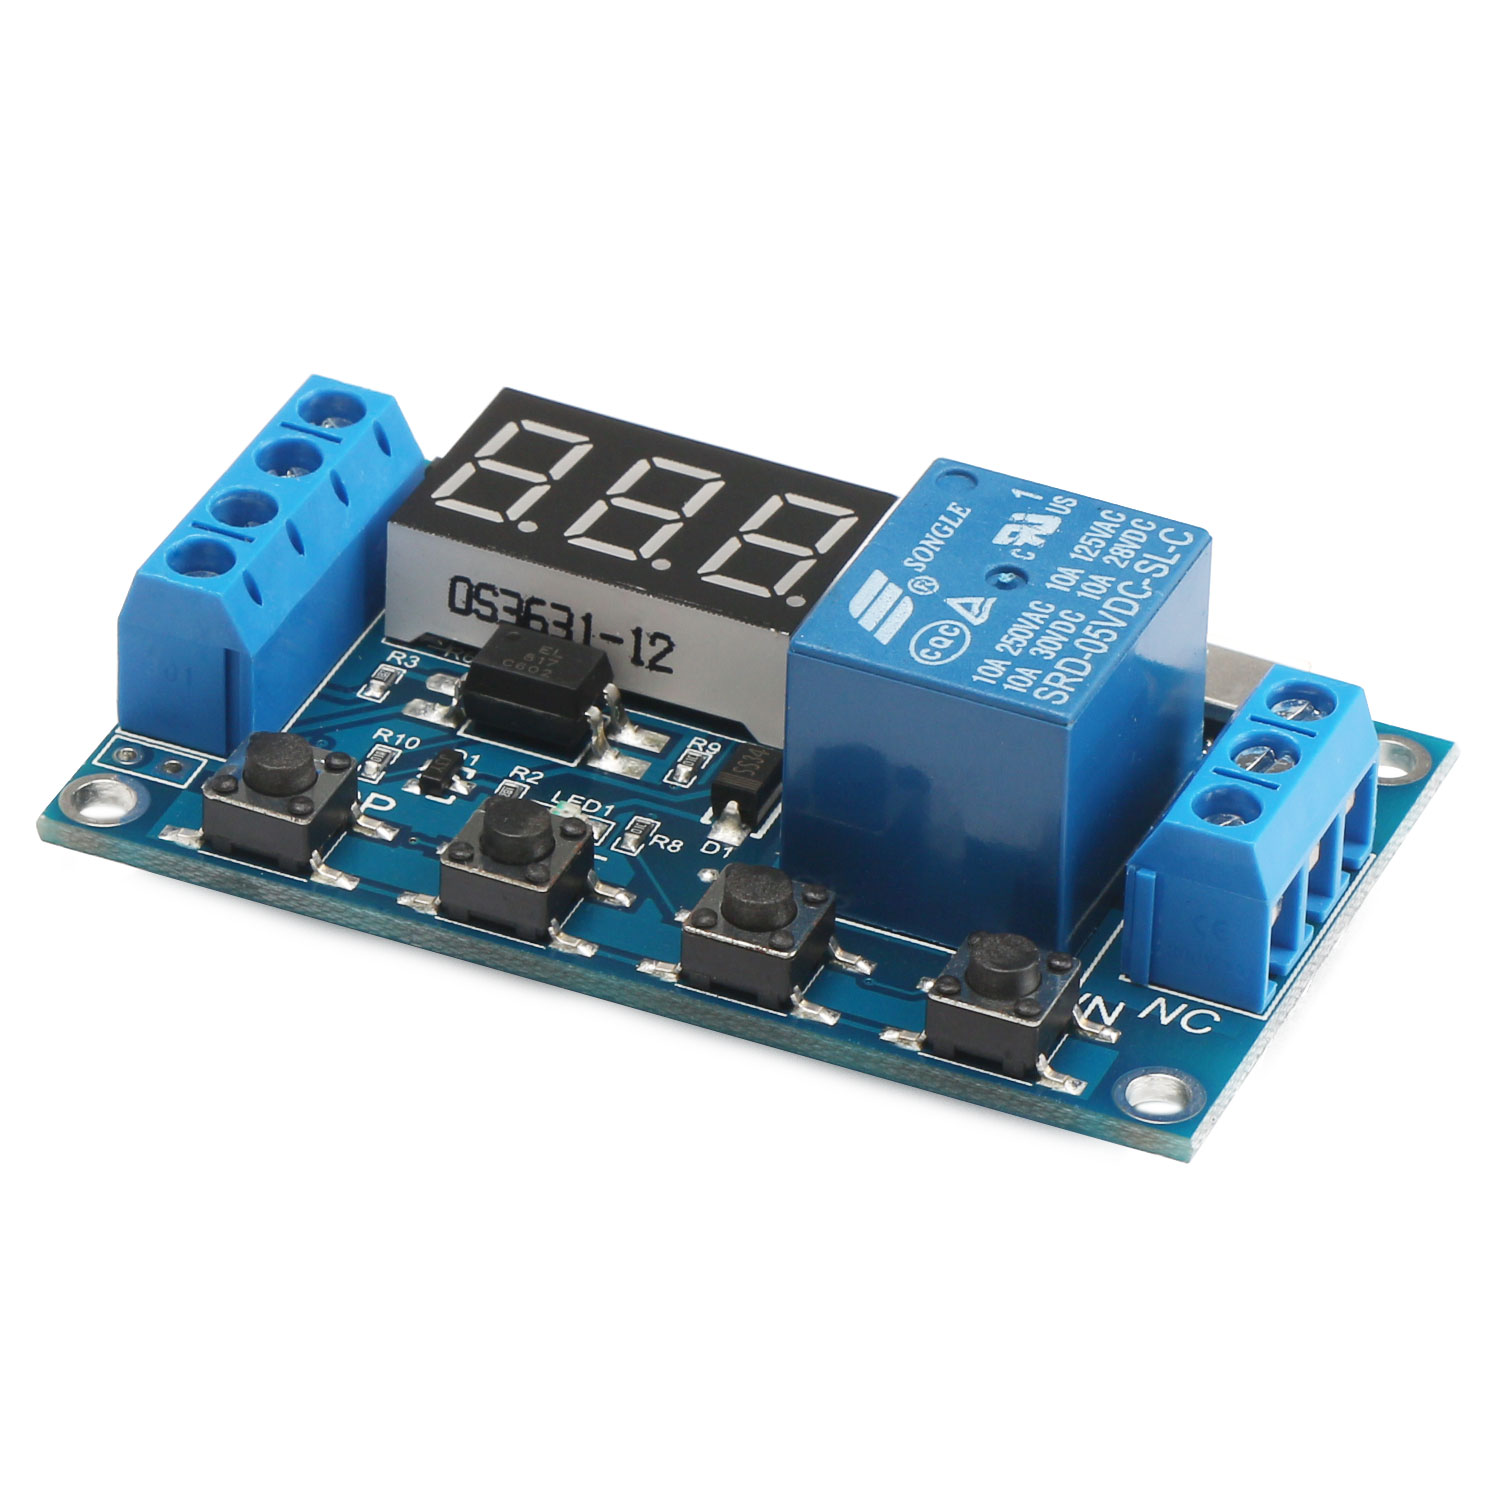 1-Channel-Delay-Poweroff-Relay-Module-with-Cycle-Timing-Circuit-Switch.jpg